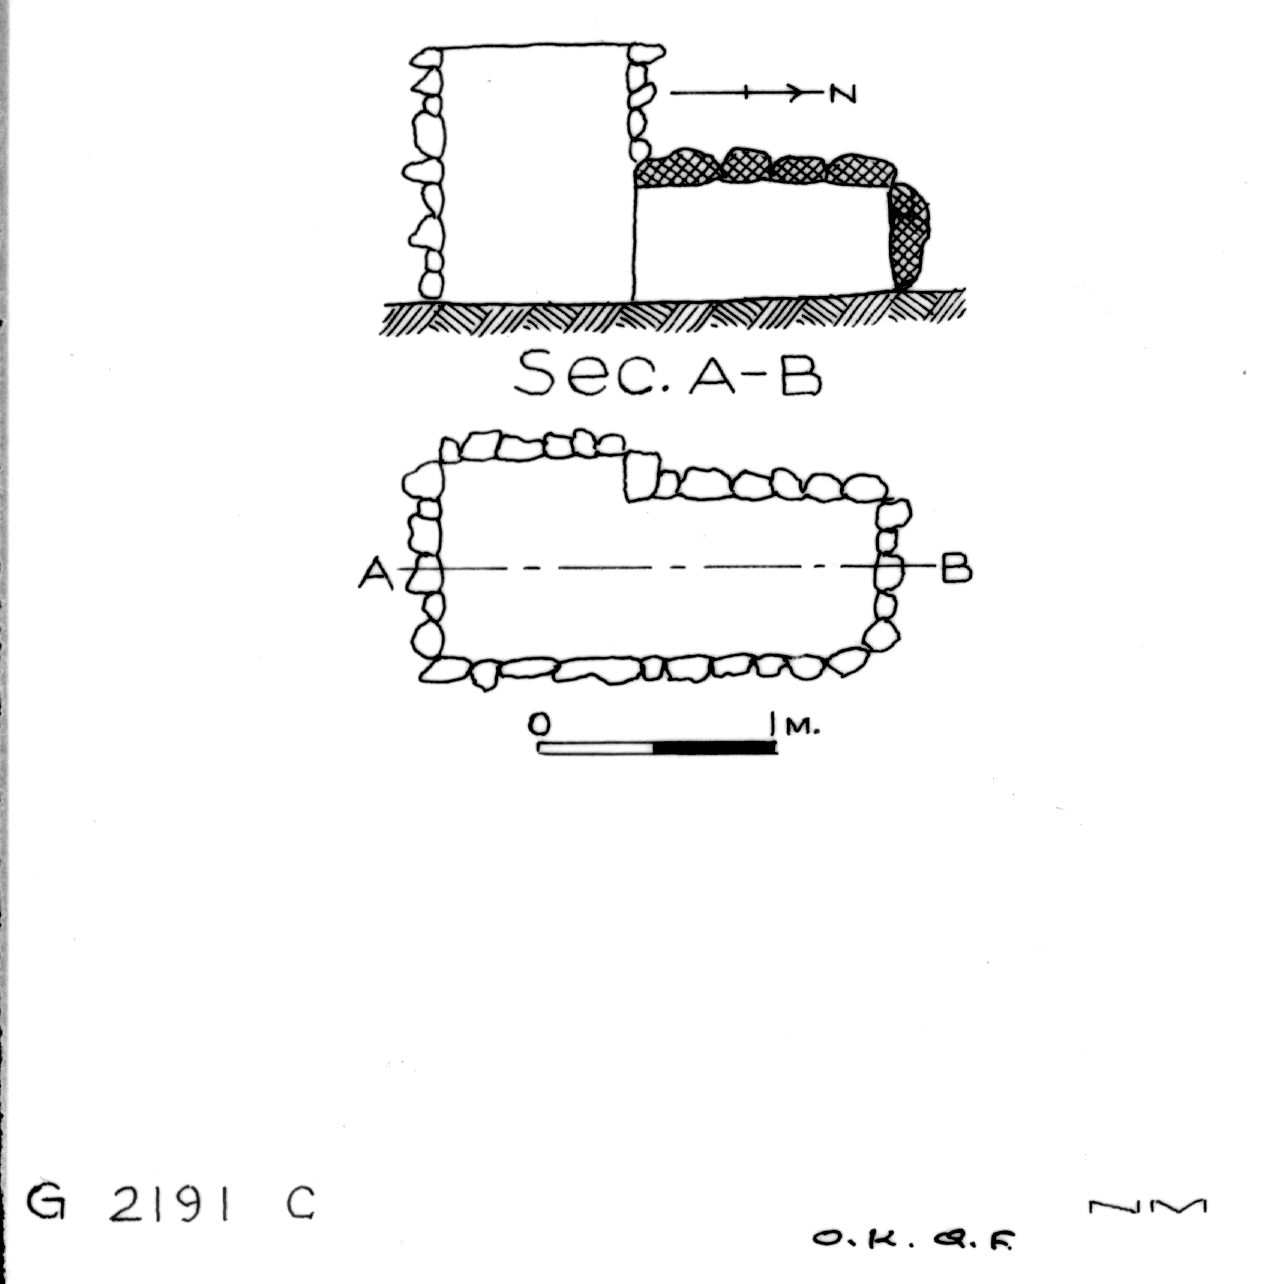 Maps and plans: G 2191, Shaft C